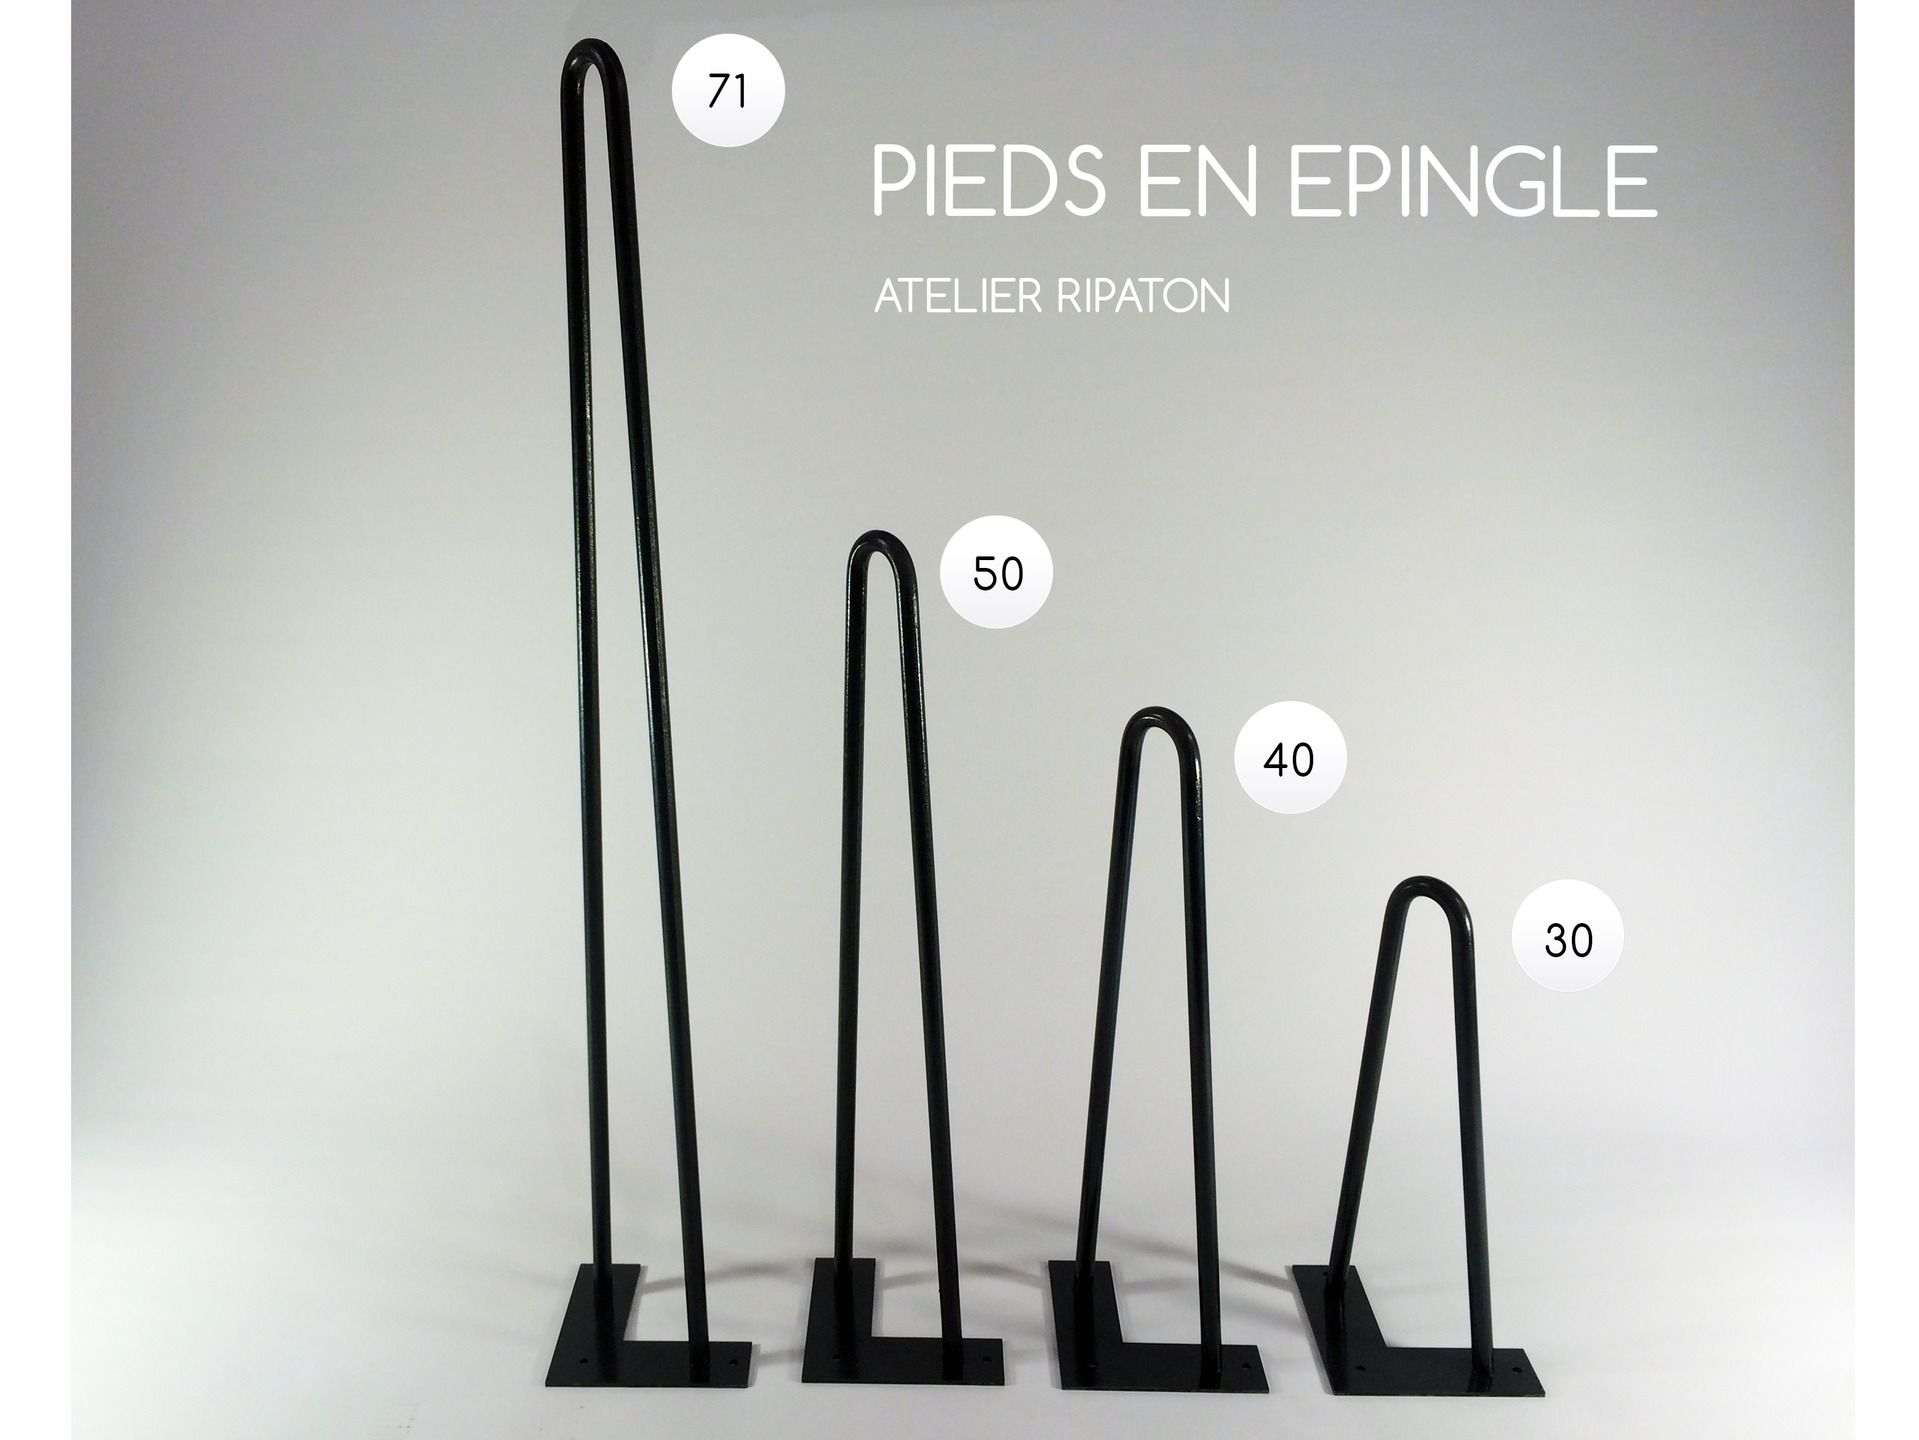 Pied de table en pingle 71 cm brut hairpin legs fait main pi tement de table meubles et - Pied de table leroy merlin ...